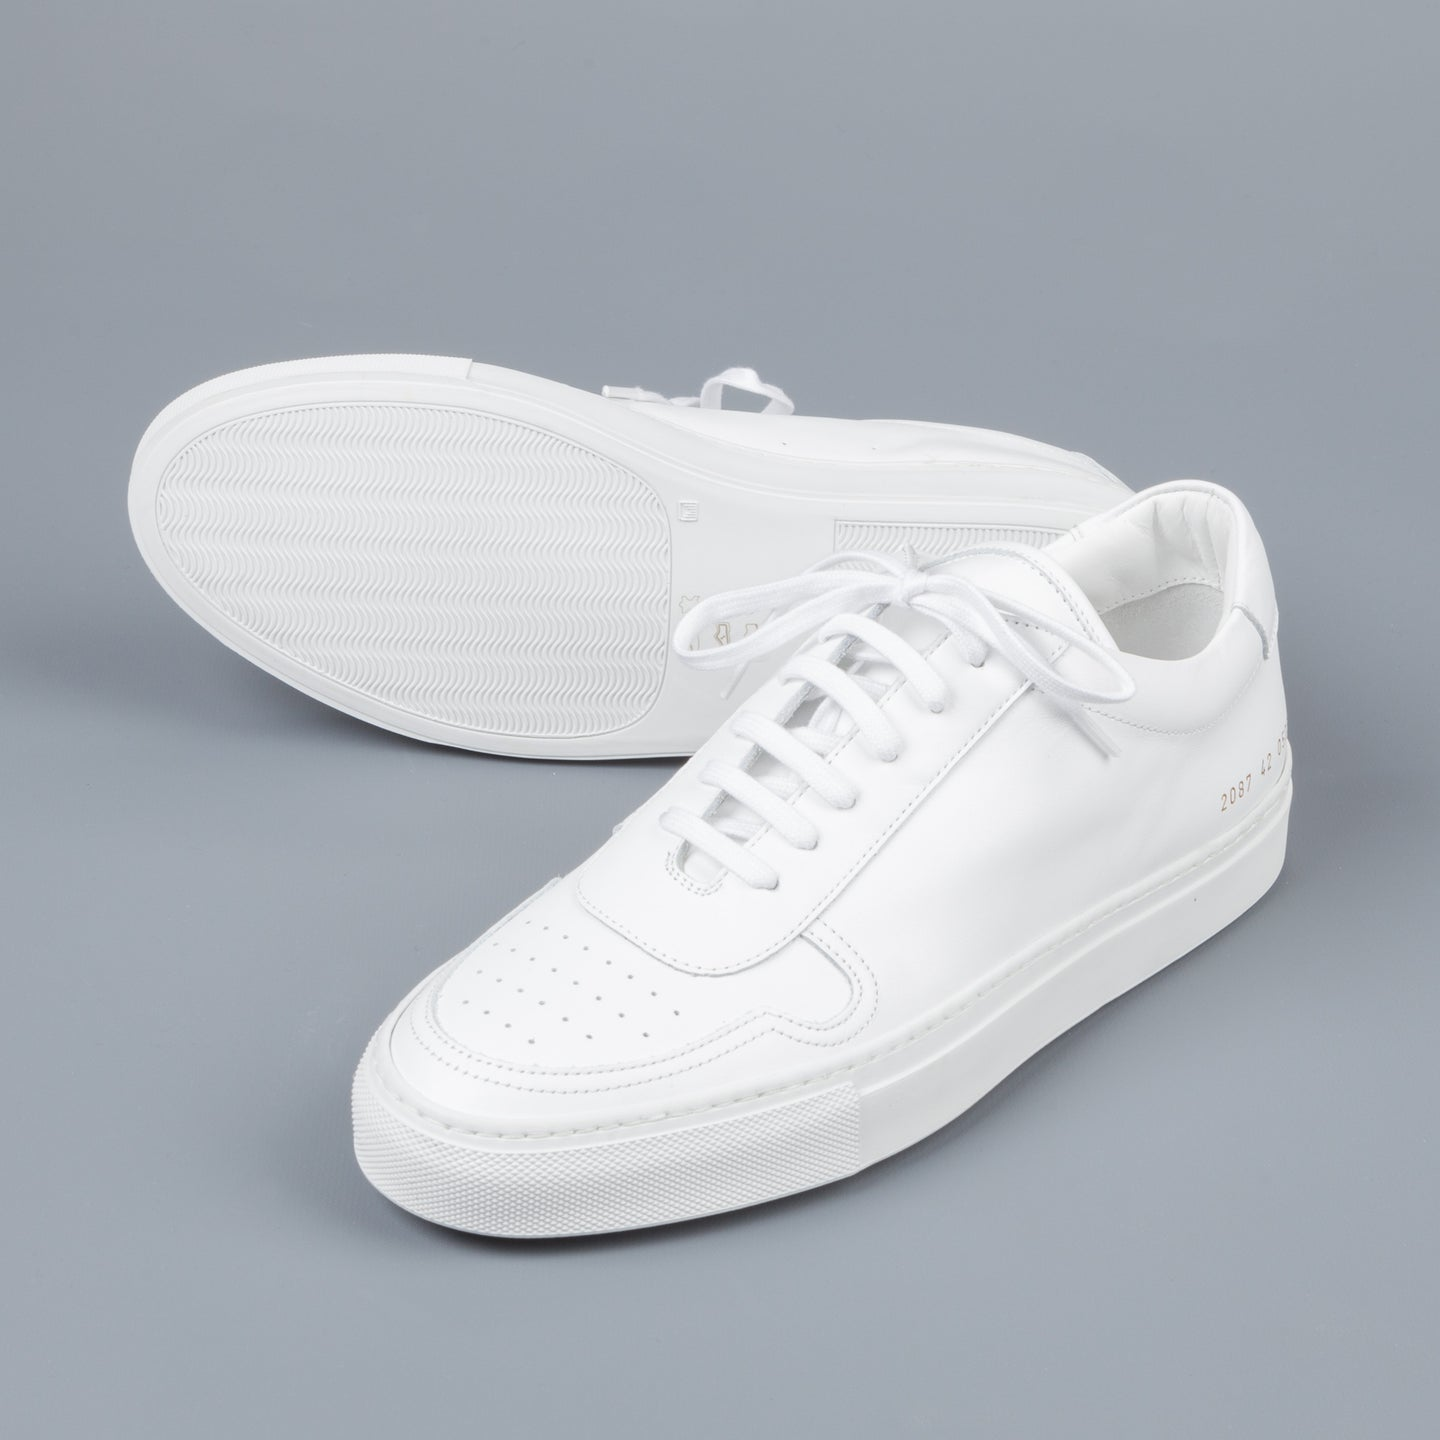 COMMON PROJECTS Bball low 5cwGLRh